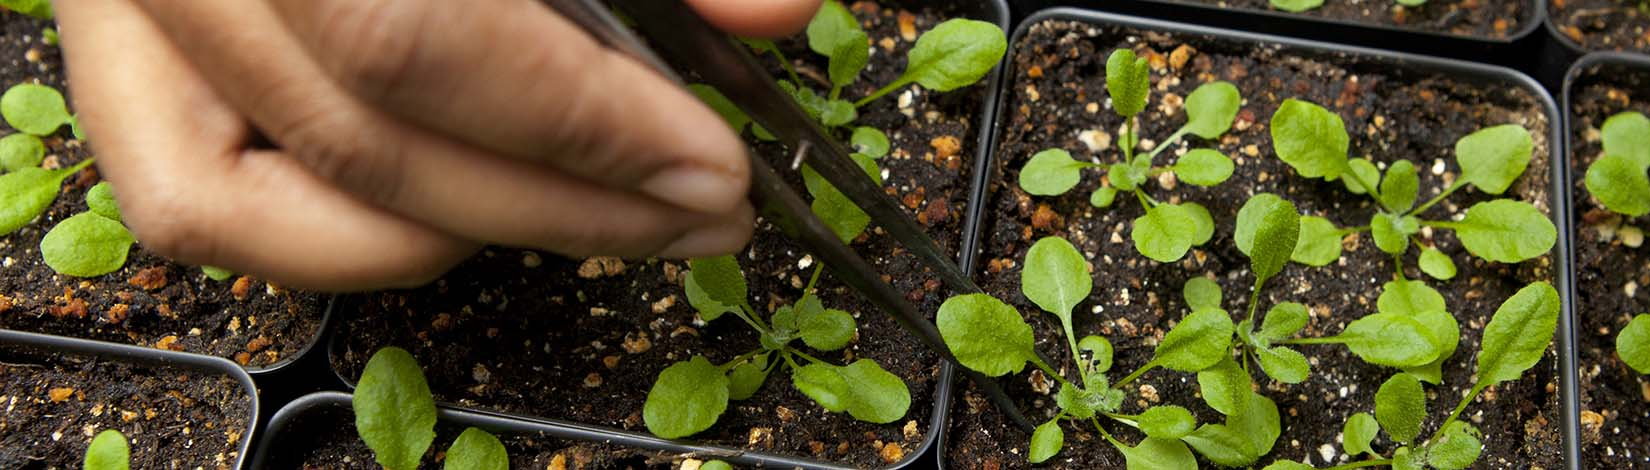 Using tweezers on plants while container gardening